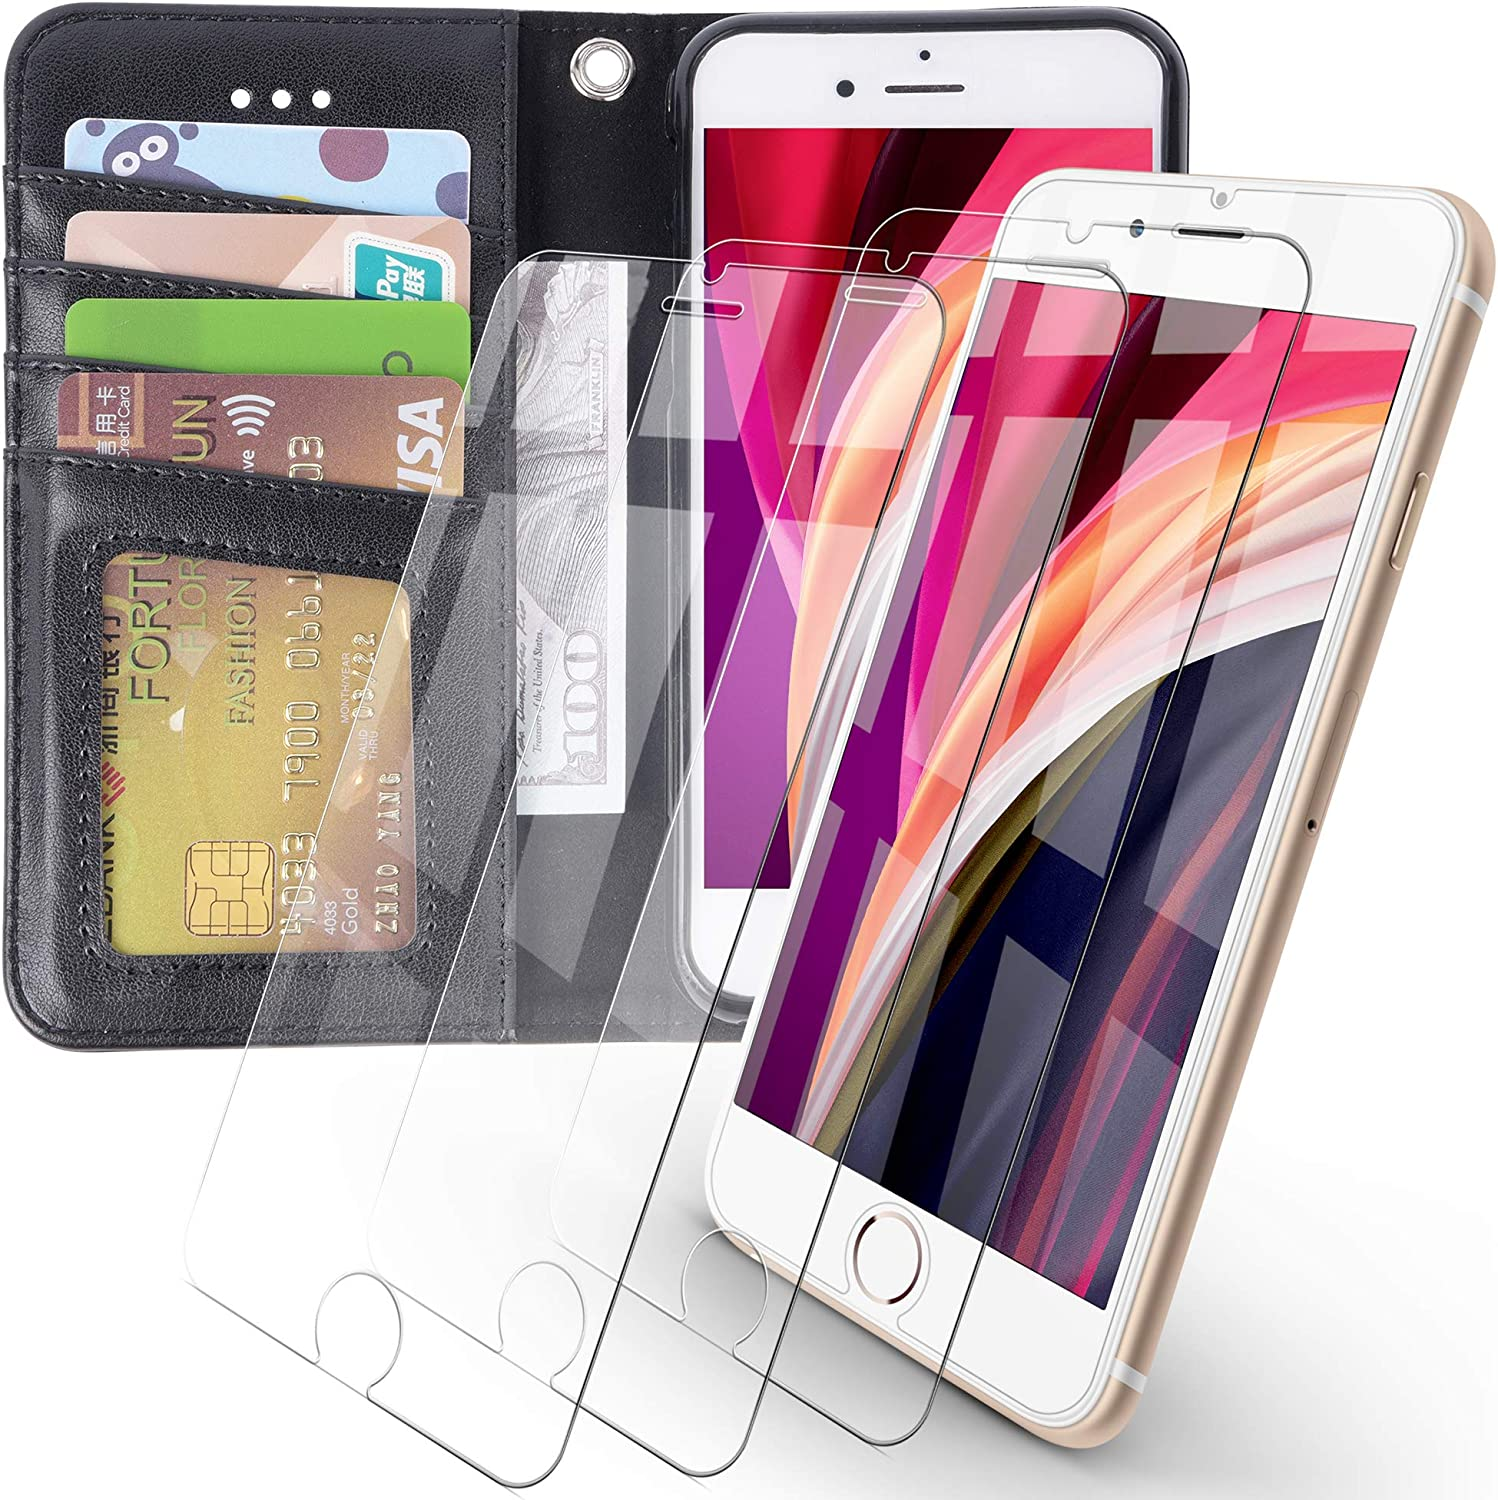 Arae iPhone 7 / iPhone 8 / iPhone SE 2020 Premium PU Leather Flip Cover Wallet Case (Black) with 3 Pack Ultra-Thin HD Tempered Glass Screen Protectors, 4.7 inch